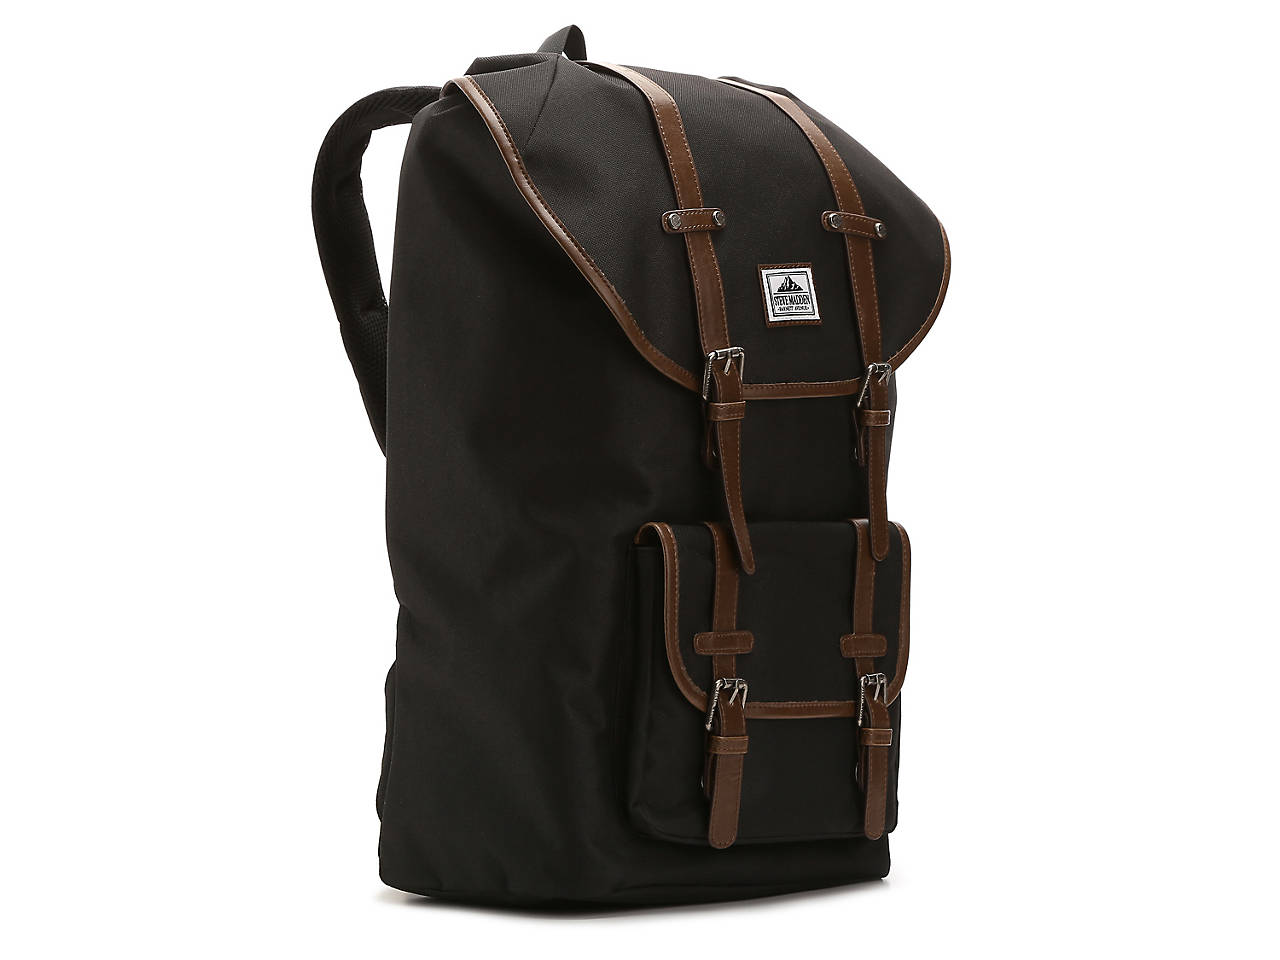 3a0a3713e5 Steve Madden Utility Backpack Men's Handbags & Accessories | DSW